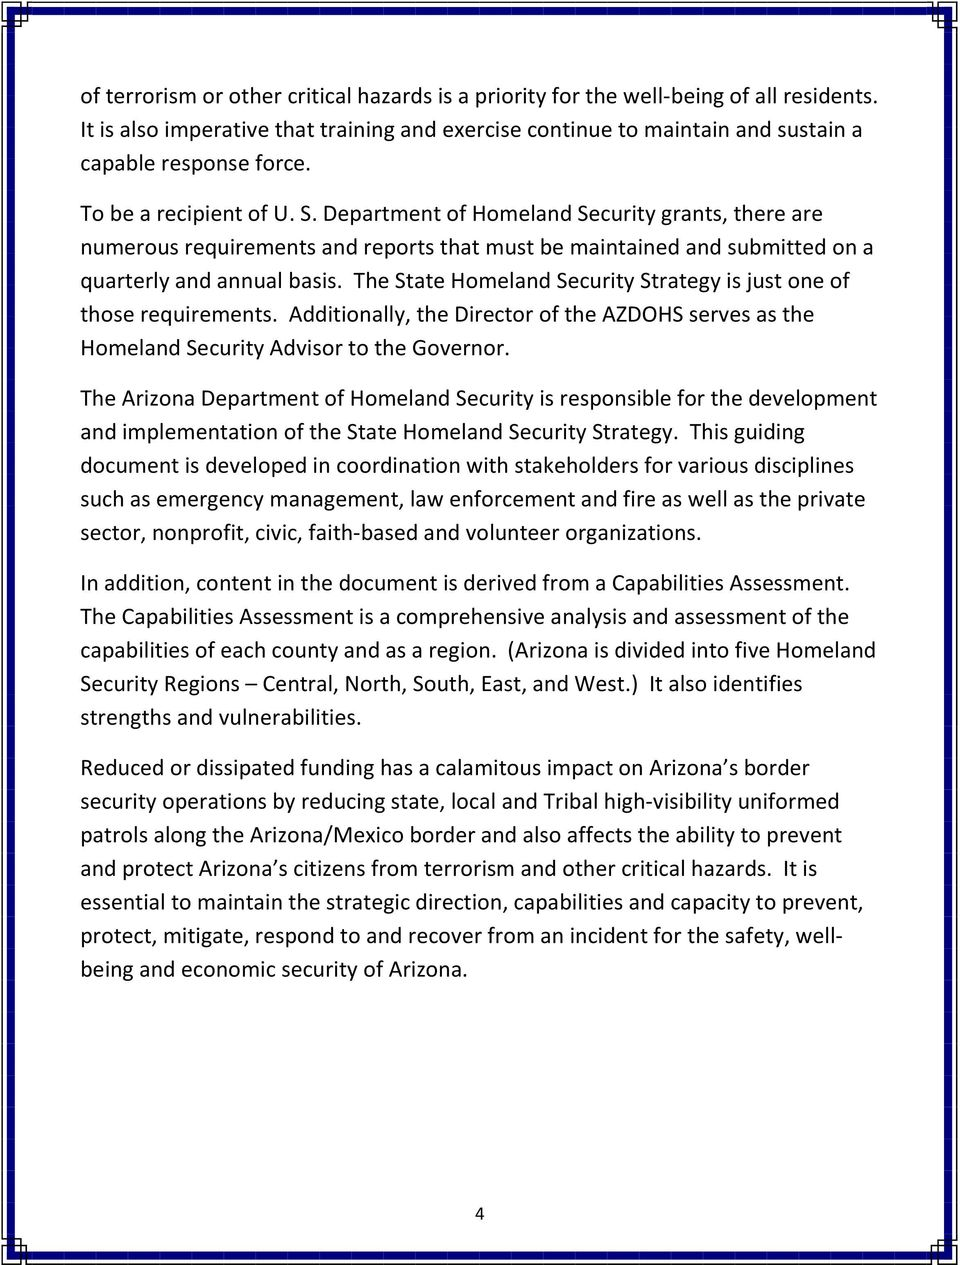 The State Homeland Security Strategy is just one of those requirements. Additionally, the Director of the AZDOHS serves as the Homeland Security Advisor to the Governor.